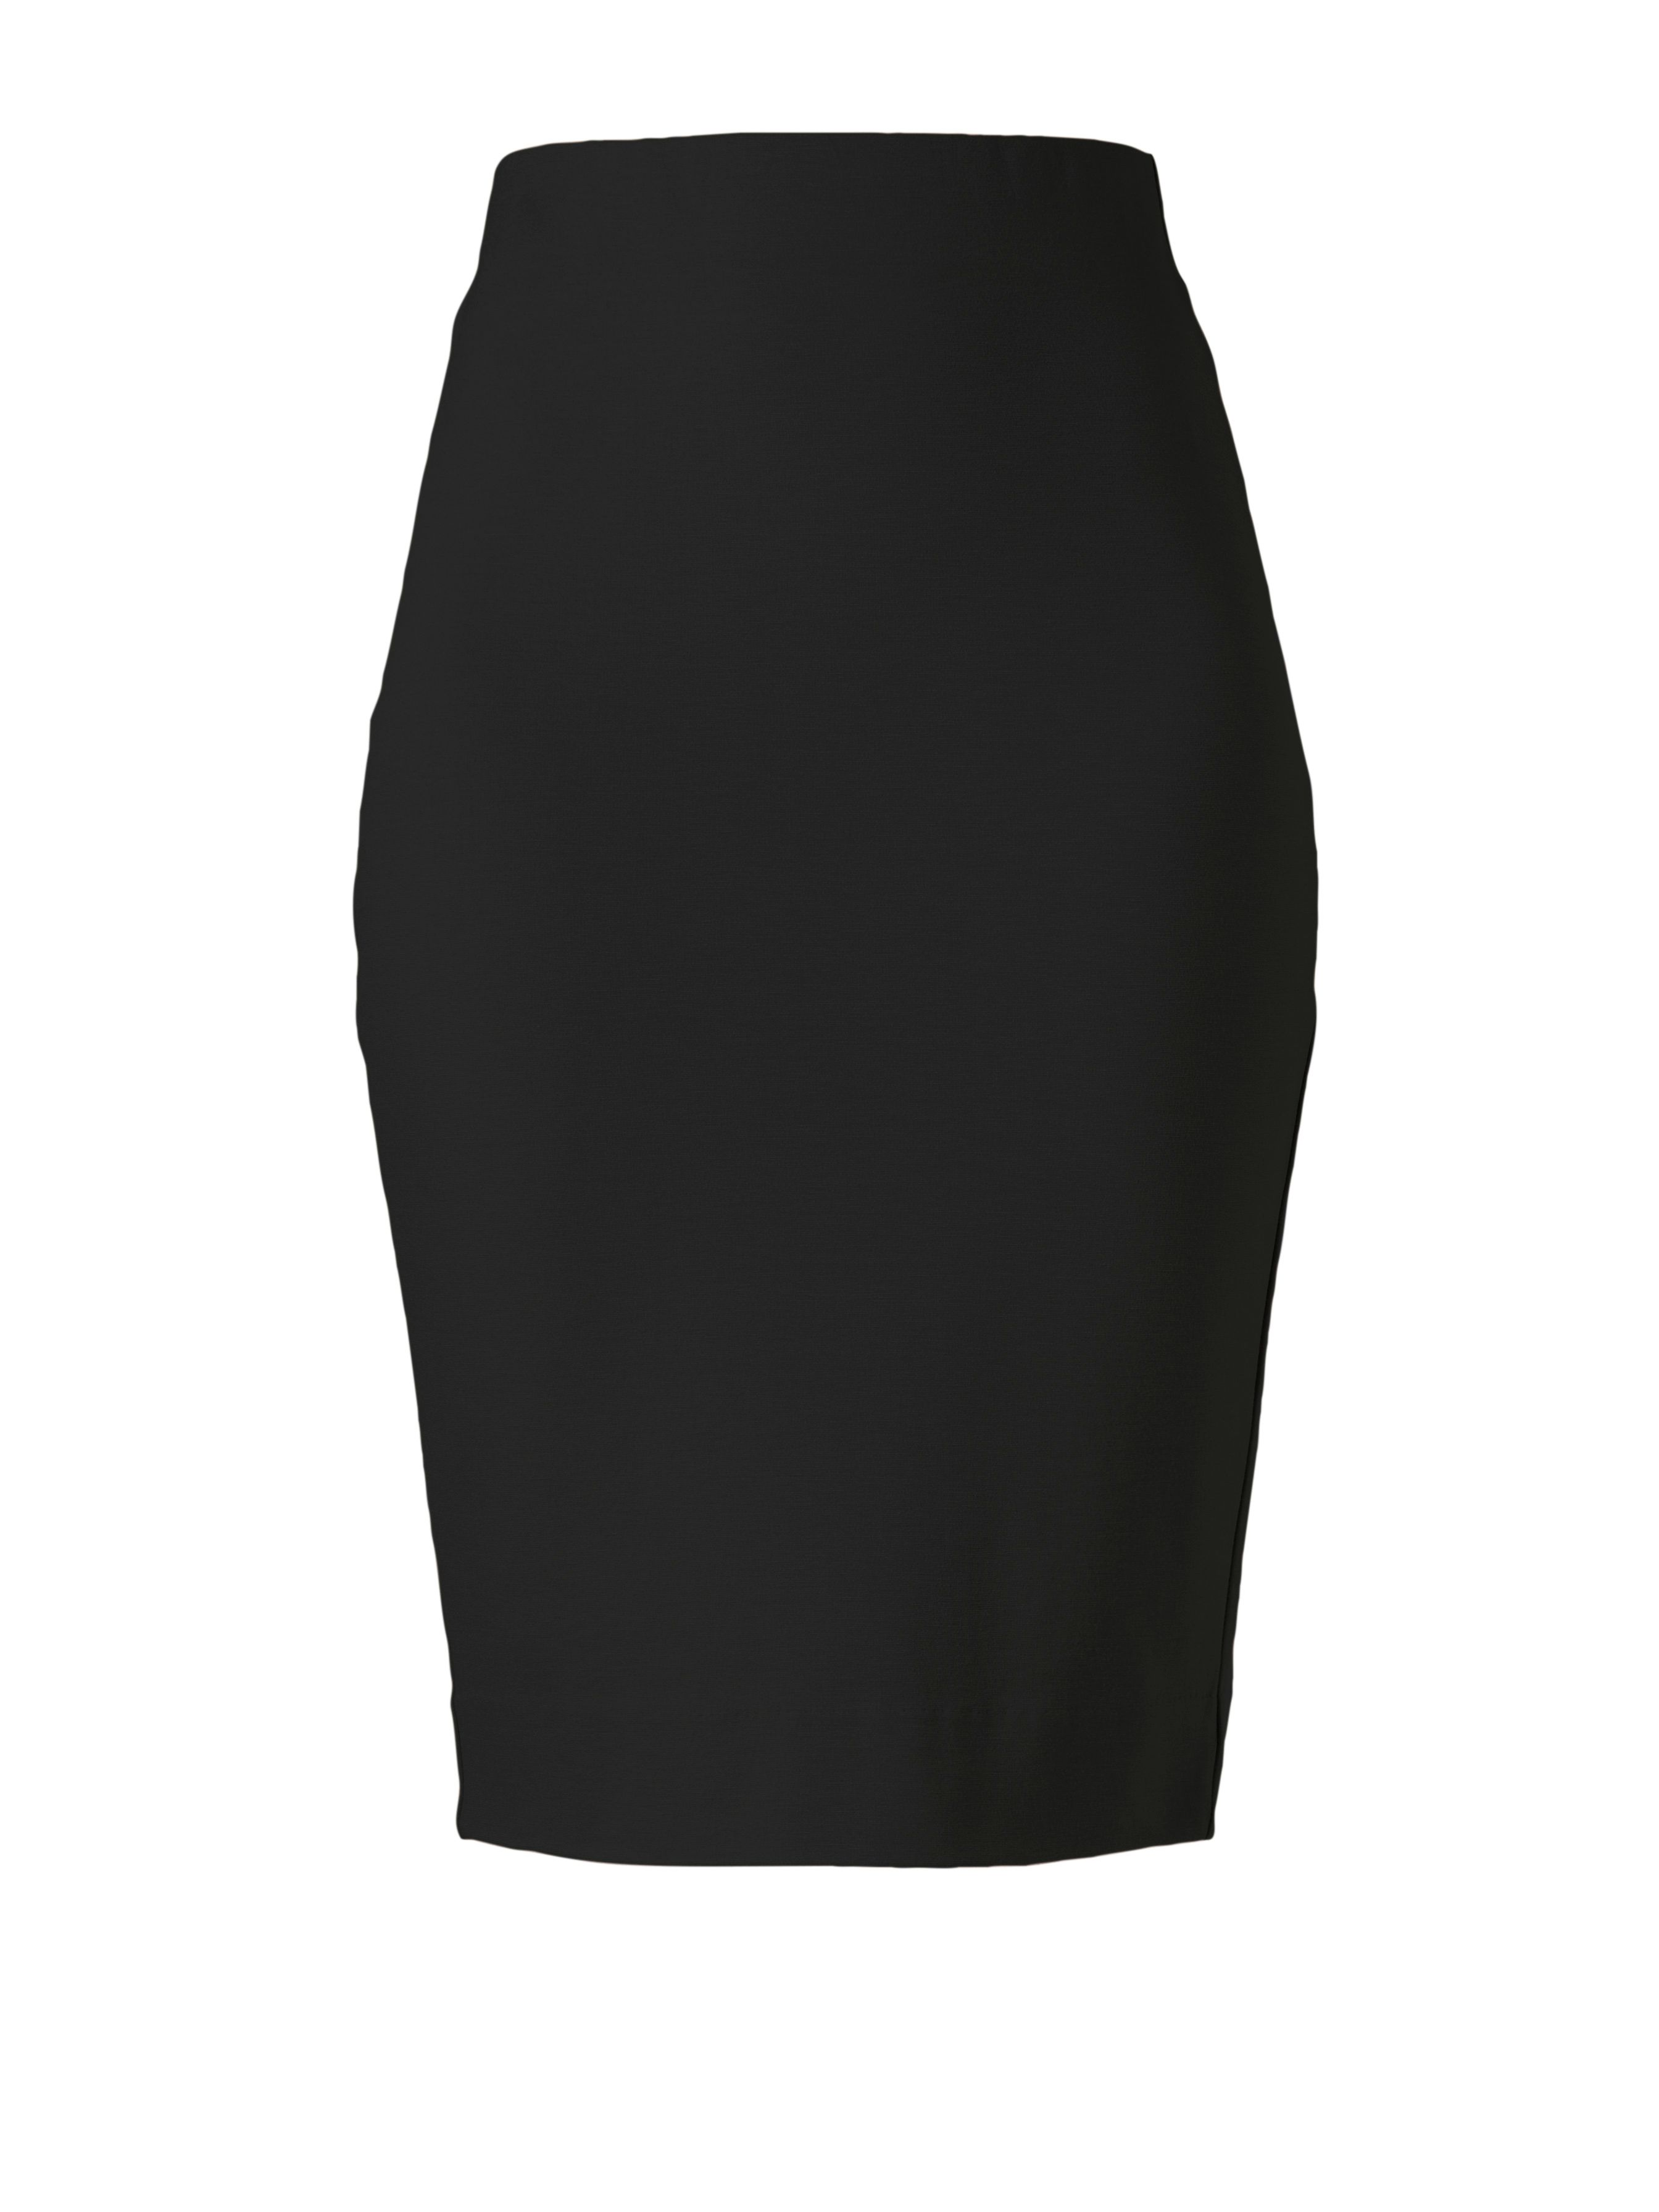 Winser London Miracle Pencil Skirt, Black